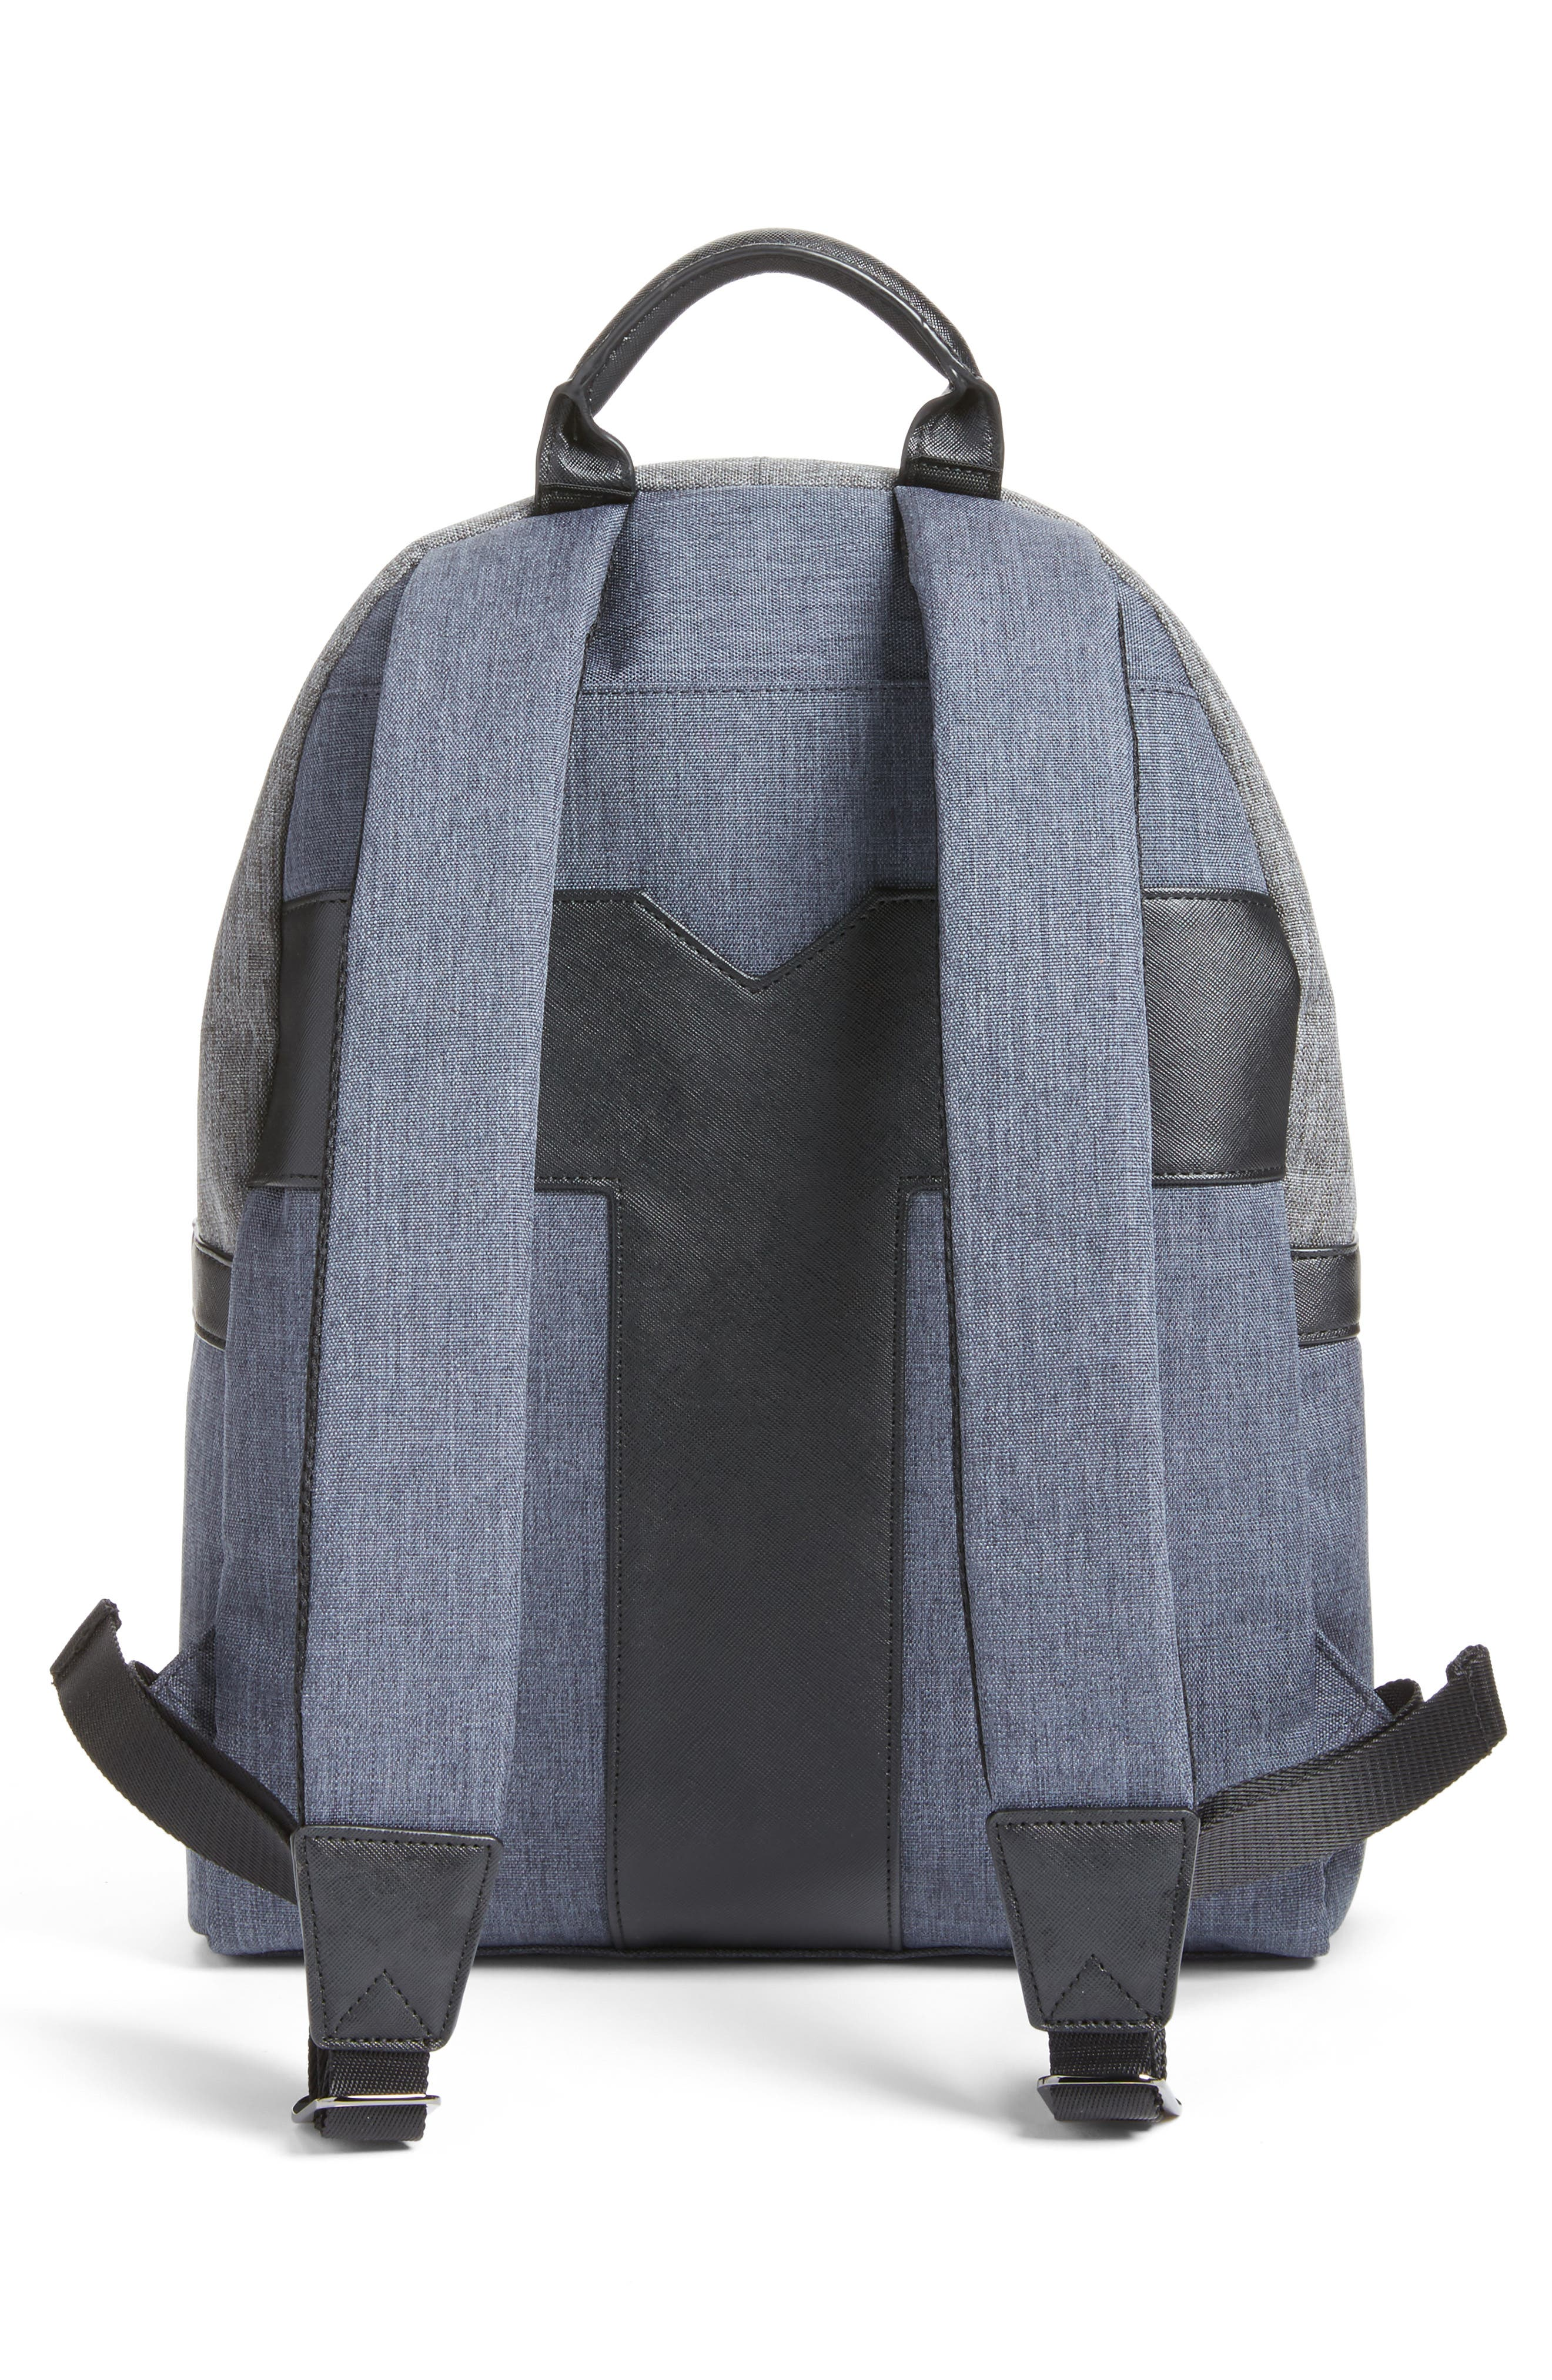 Stingra Backpack,                             Alternate thumbnail 3, color,                             010